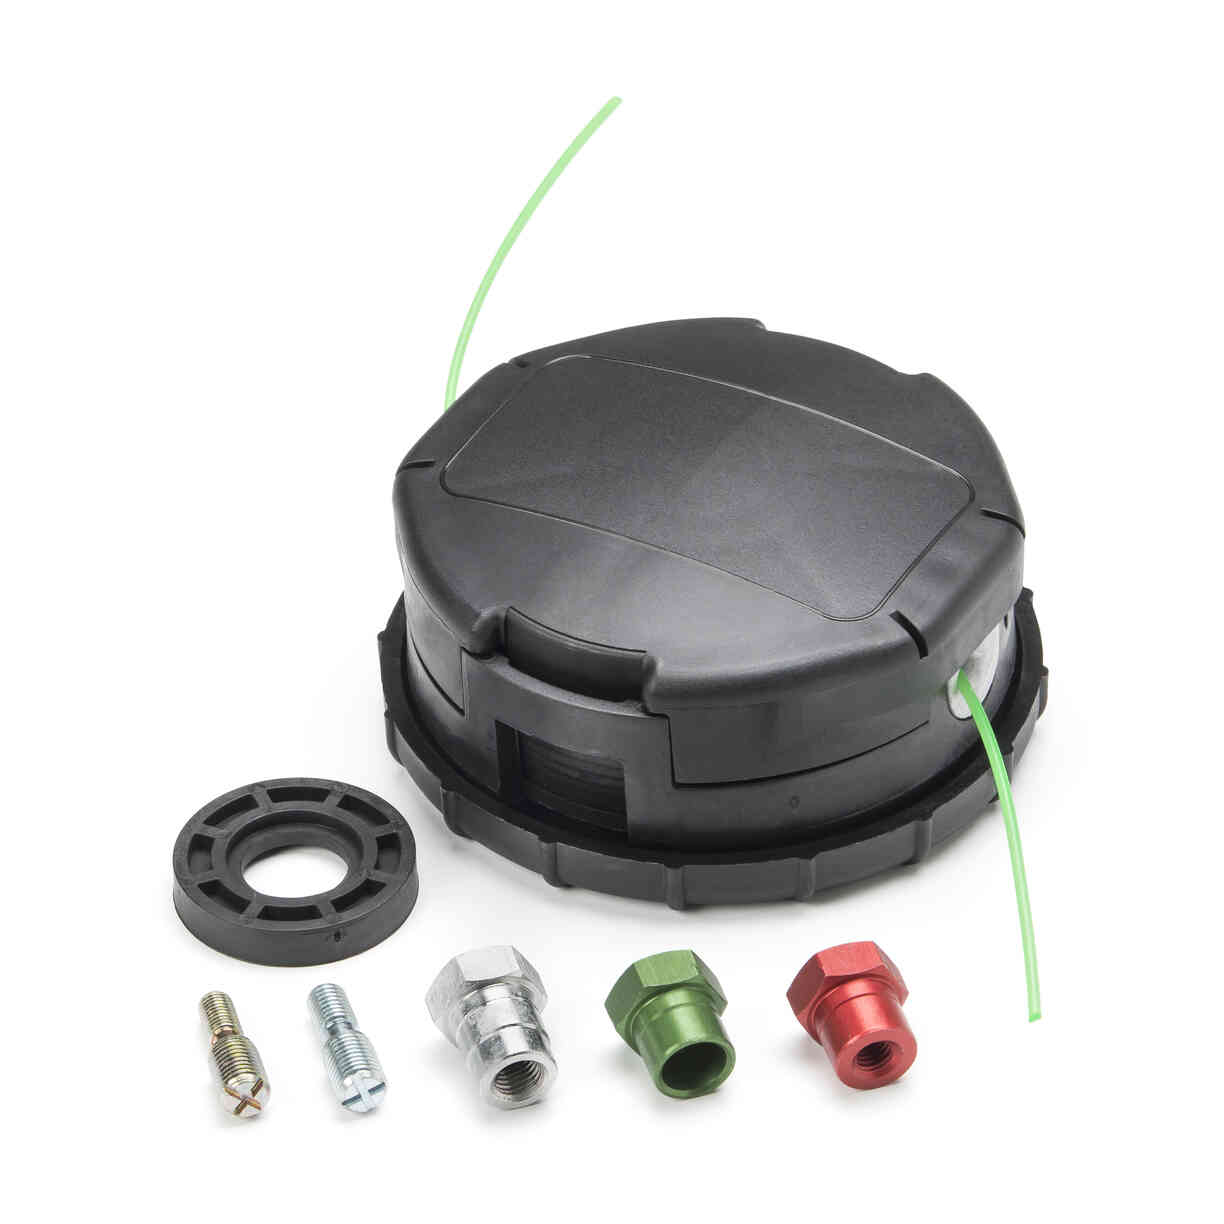 WEED TRIMMER HEAD REPLACEMENT 55-265